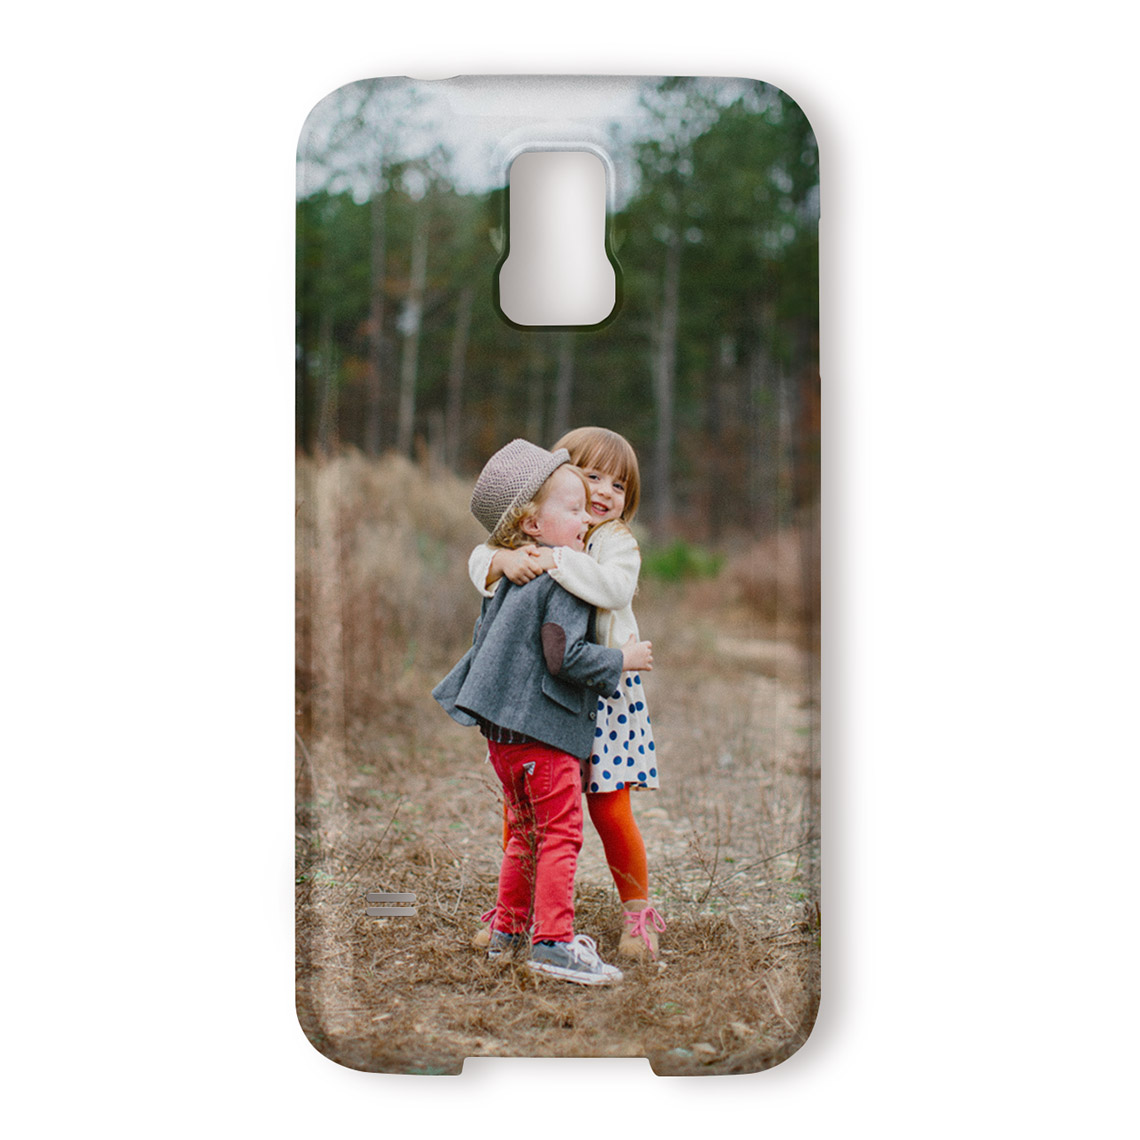 custom samsung galaxy s5 case samsung galaxy sv phone cases